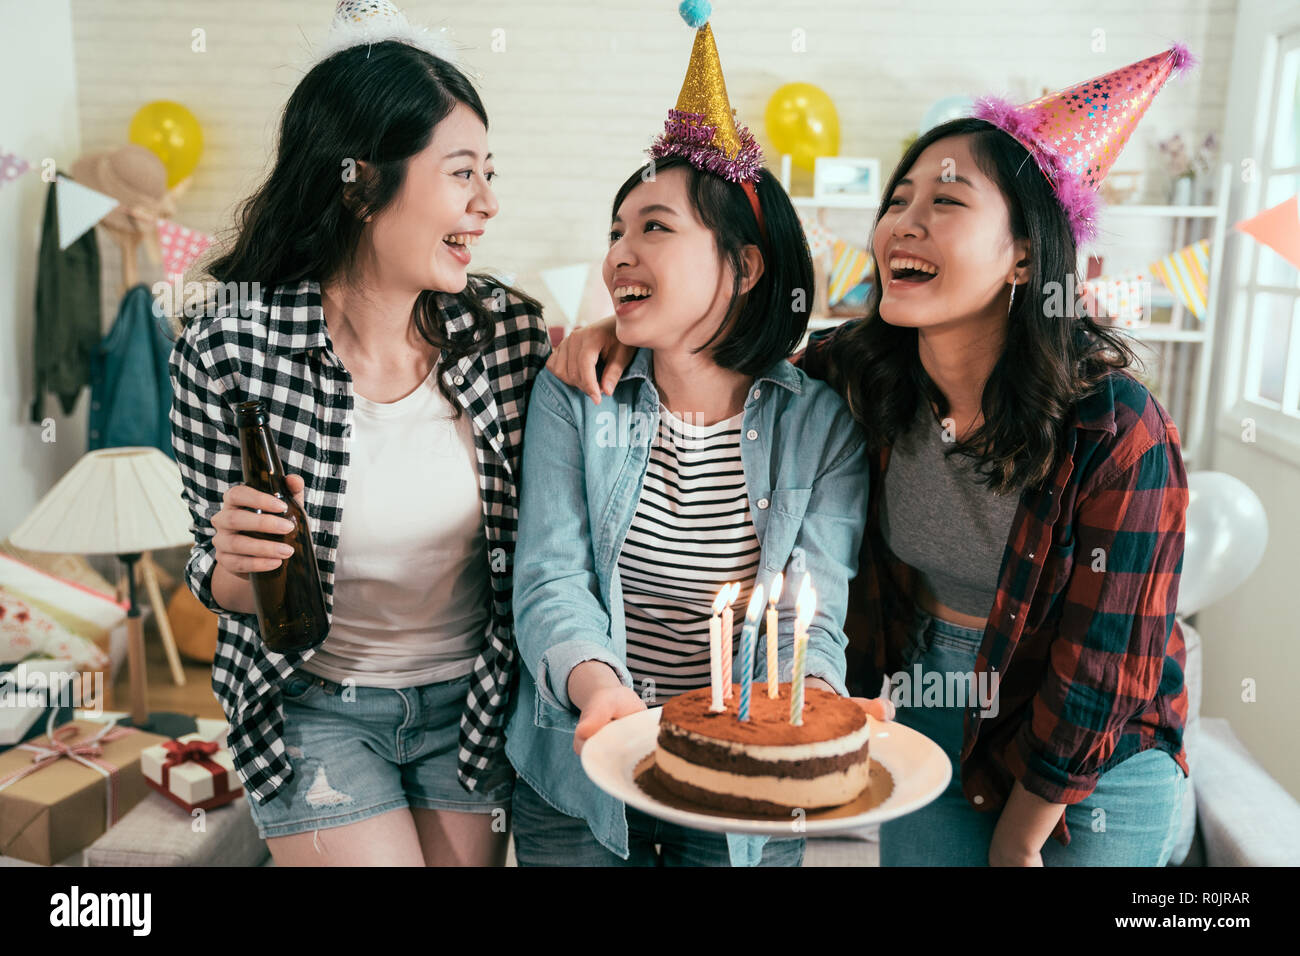 Girl Best Friends Birthday Party At Home Three Celebrating With Surprise In House Female People Holding Cake Candles On Fire S